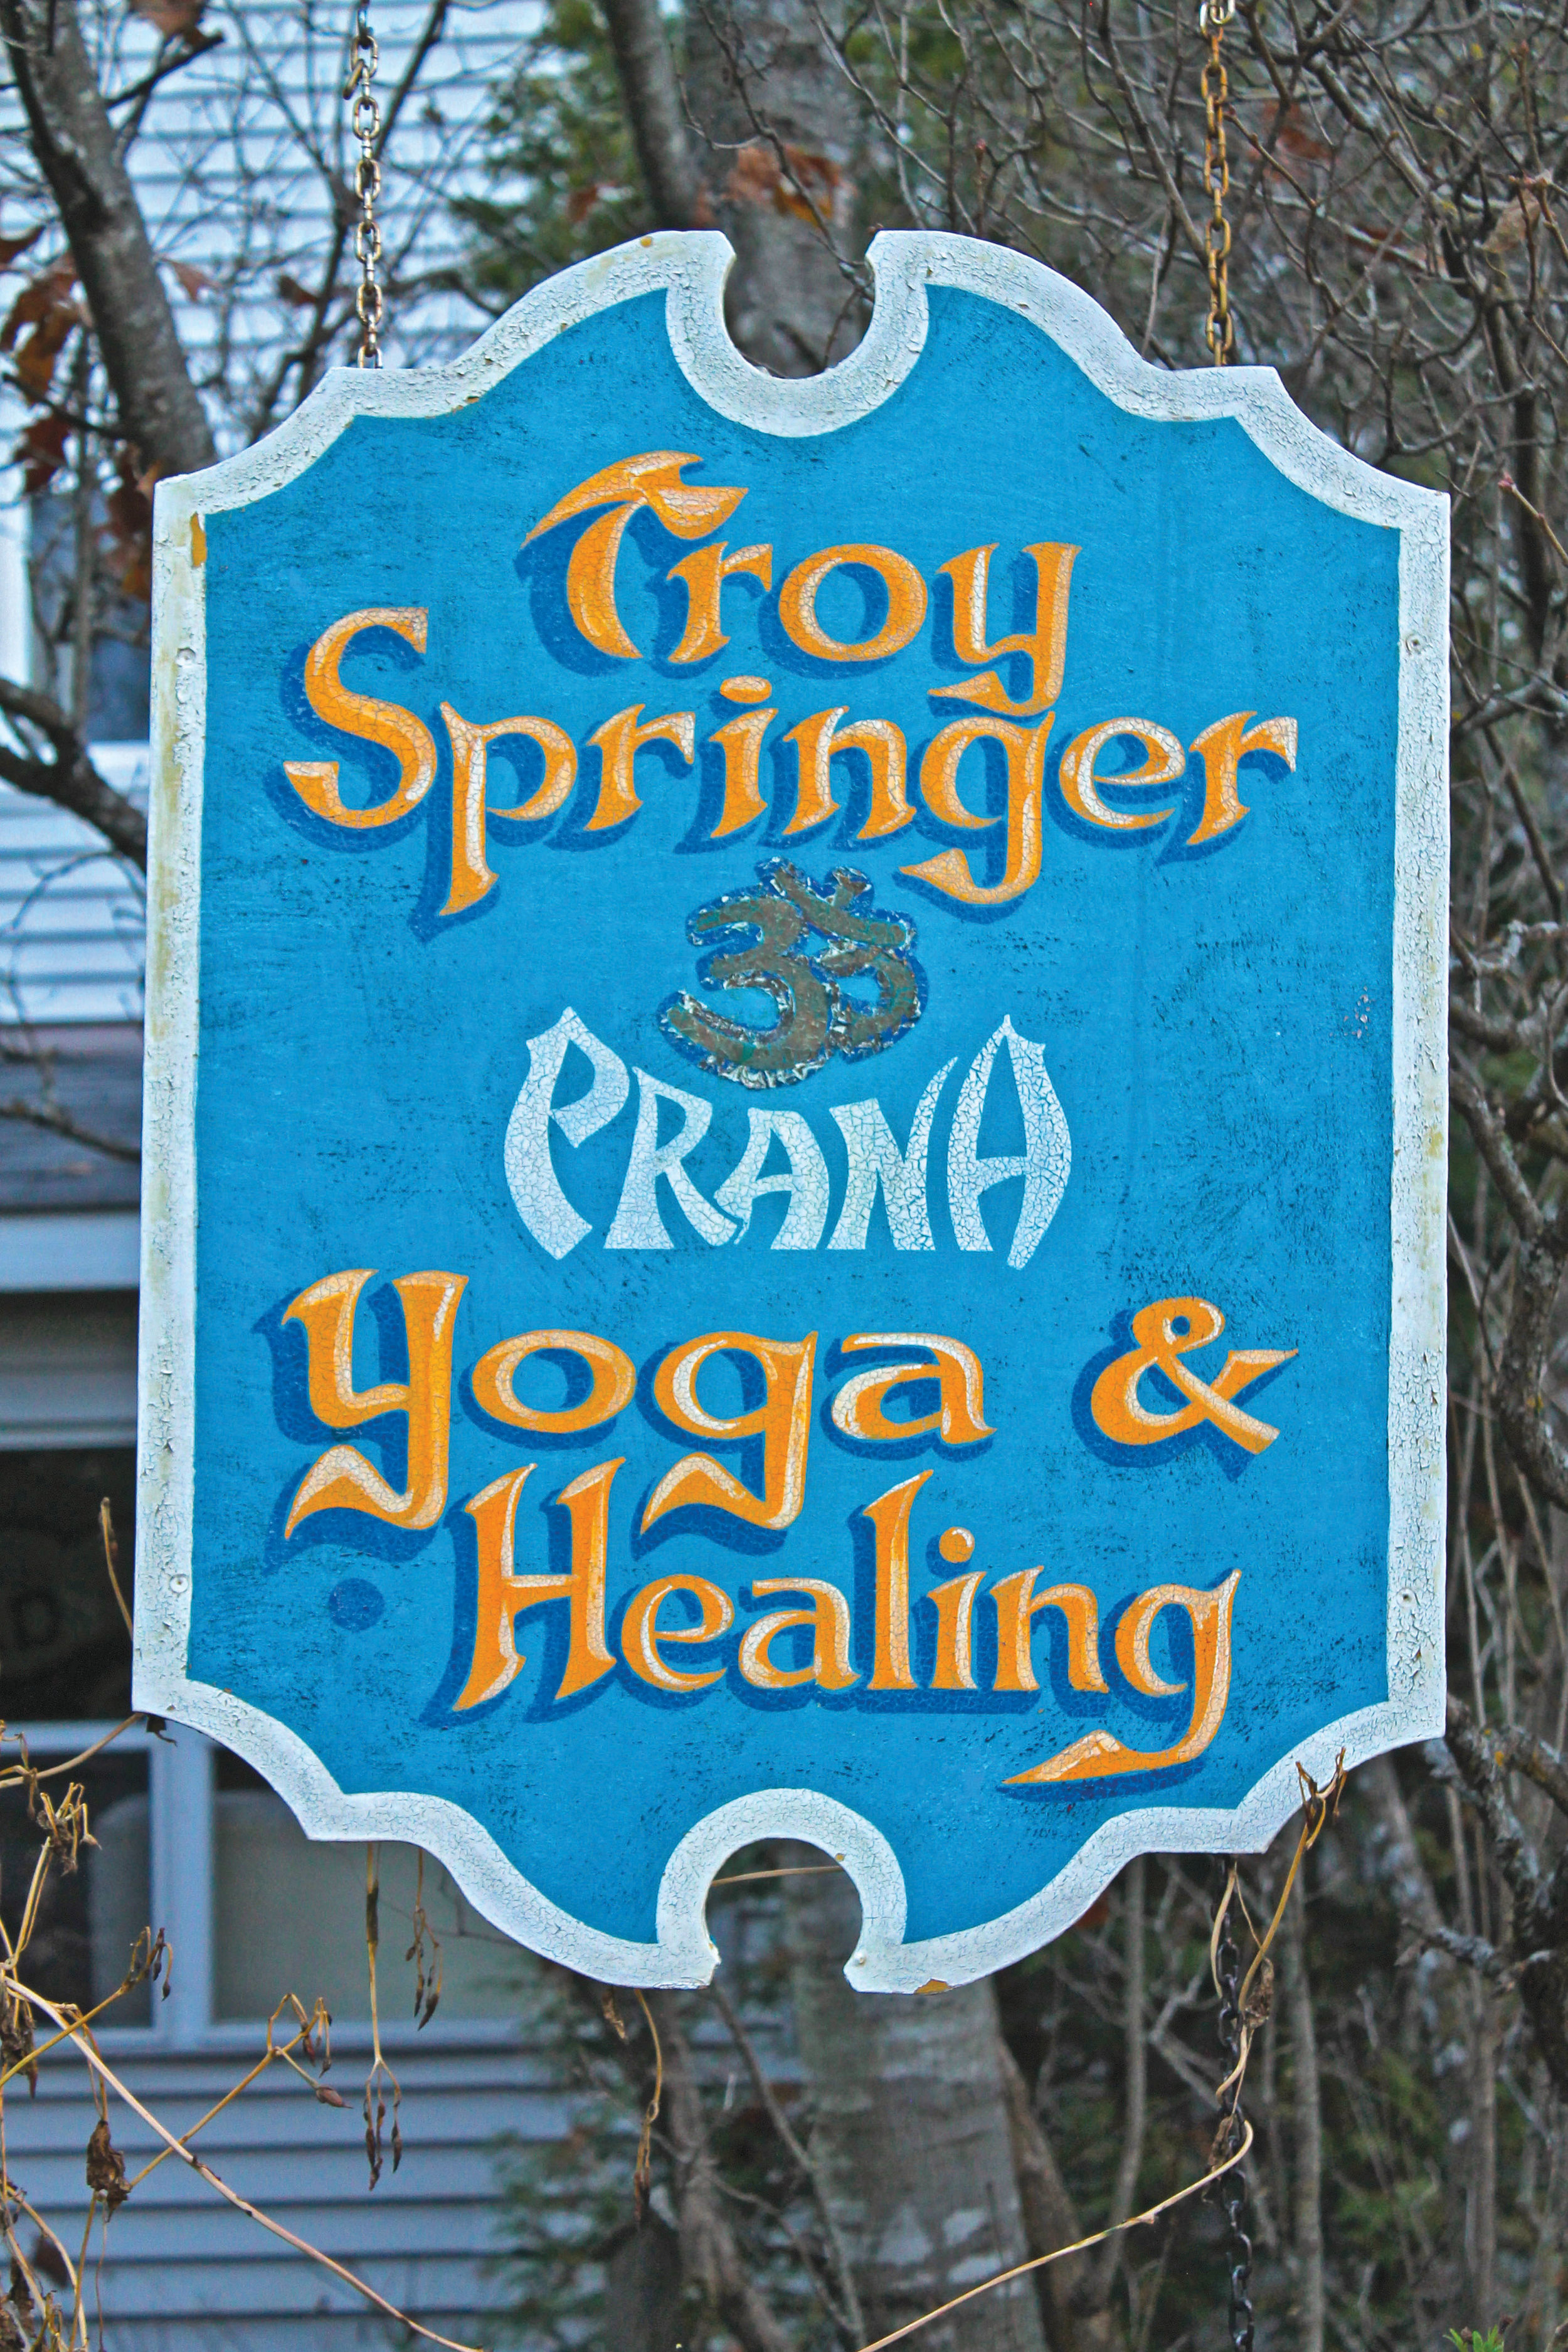 Springer has a flourishing yoga and healing practice in Bancroft. Despite not doing any marketing, her classes are always full. Photo by Michelle Annette Tremblay